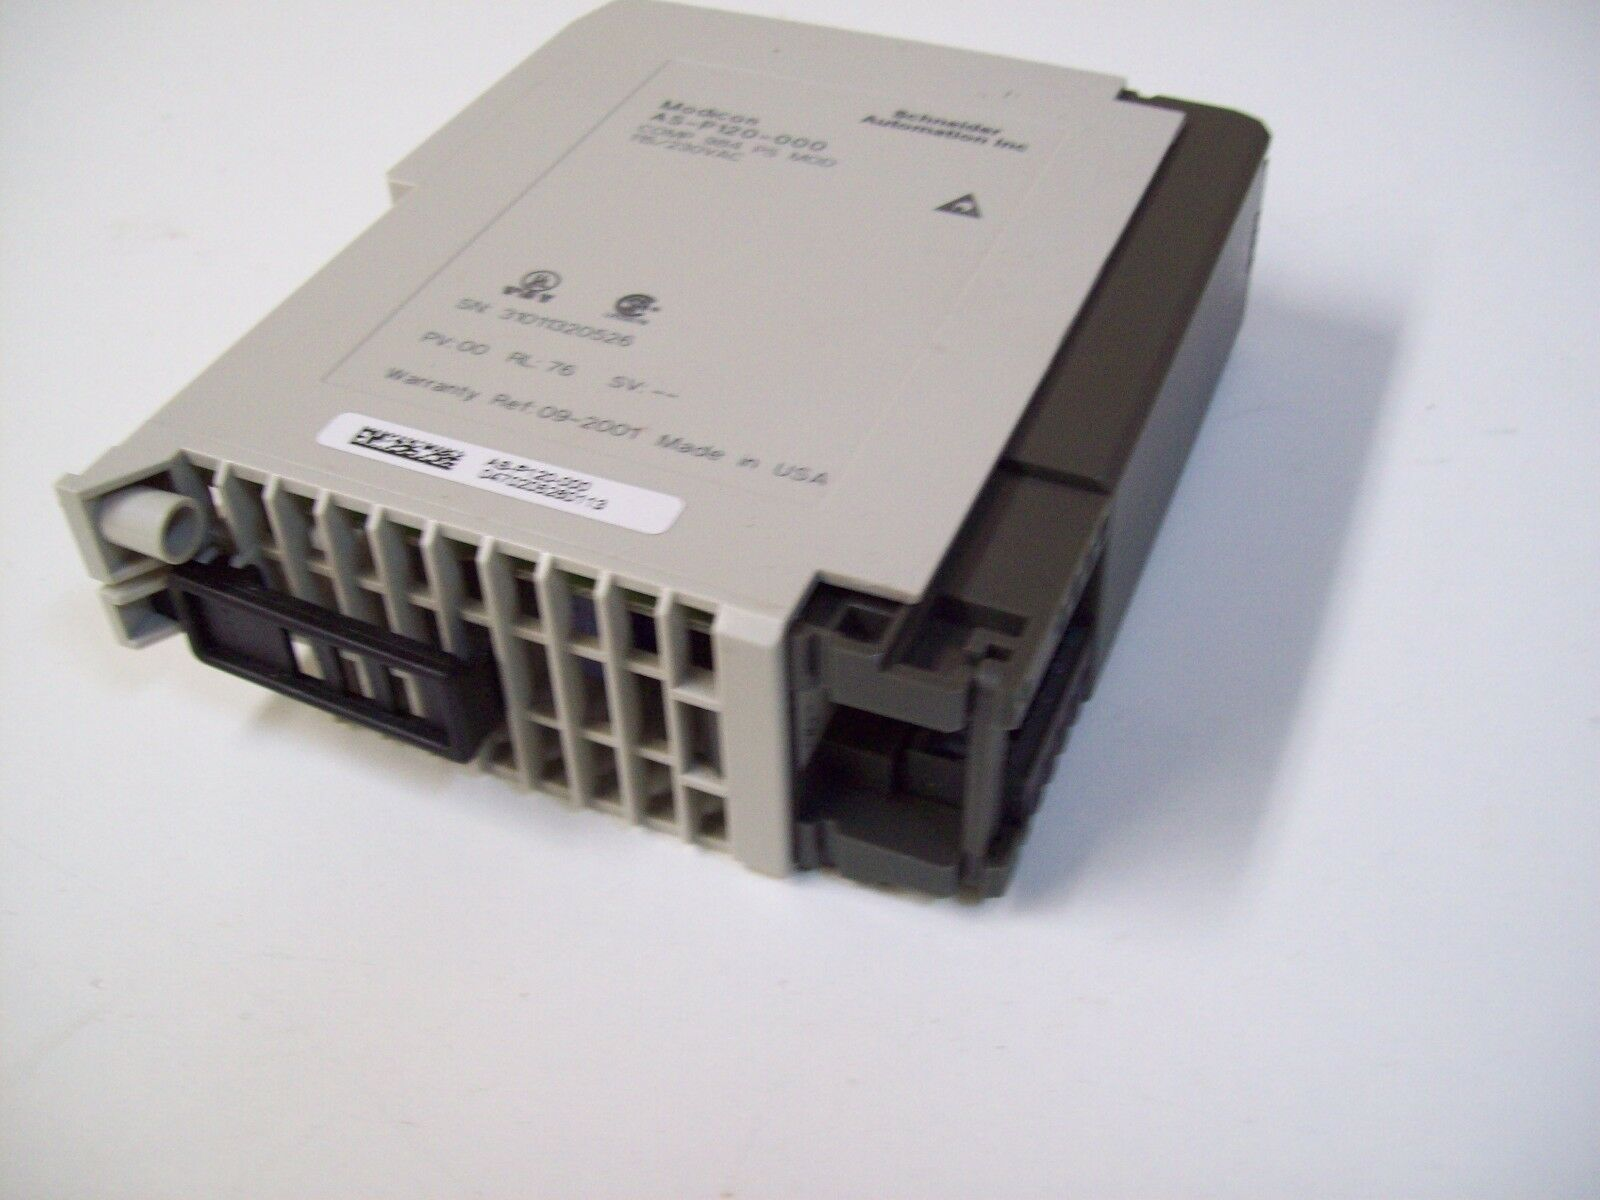 SCHNEIDER AEG MODICON AS-P120-000 POWER SUPPLY MODULE - USED - FREE SHIPPING